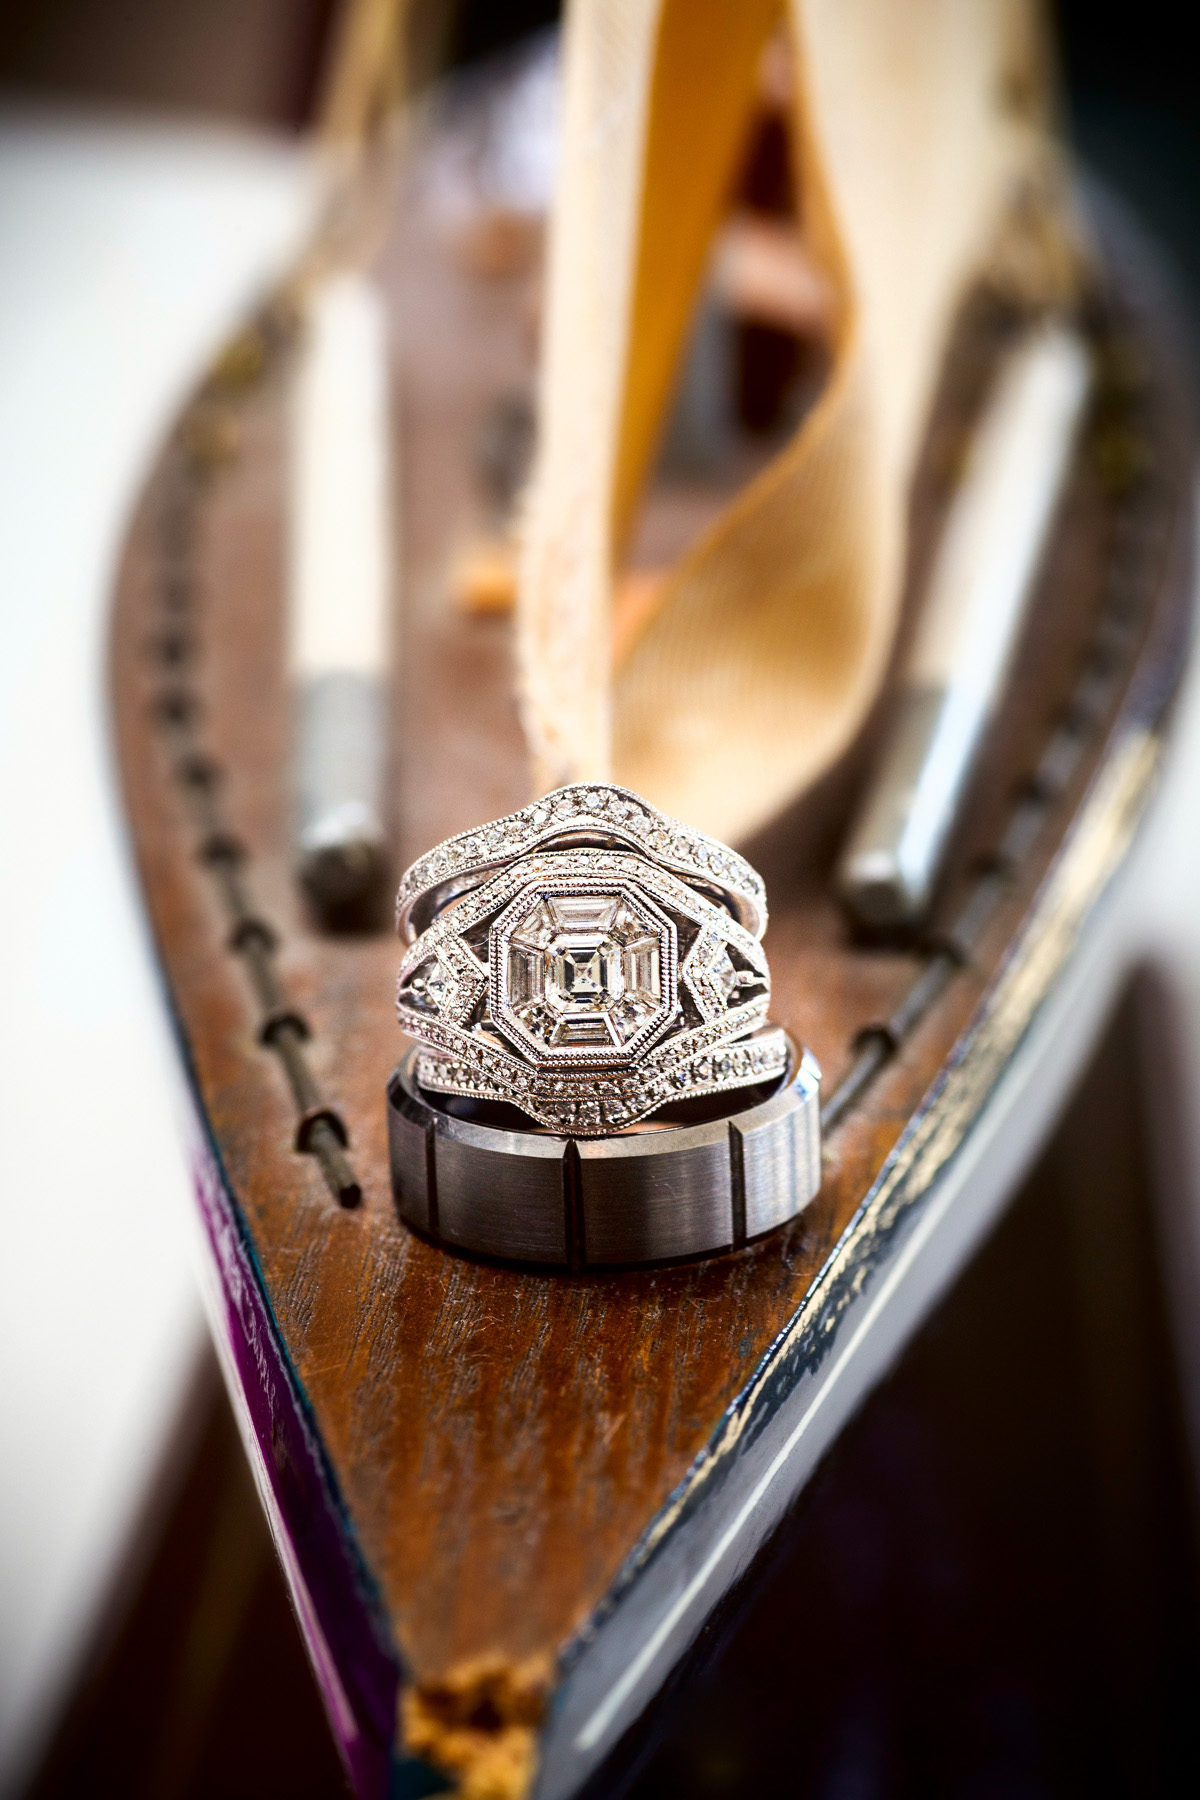 wedding rings on bow of ship